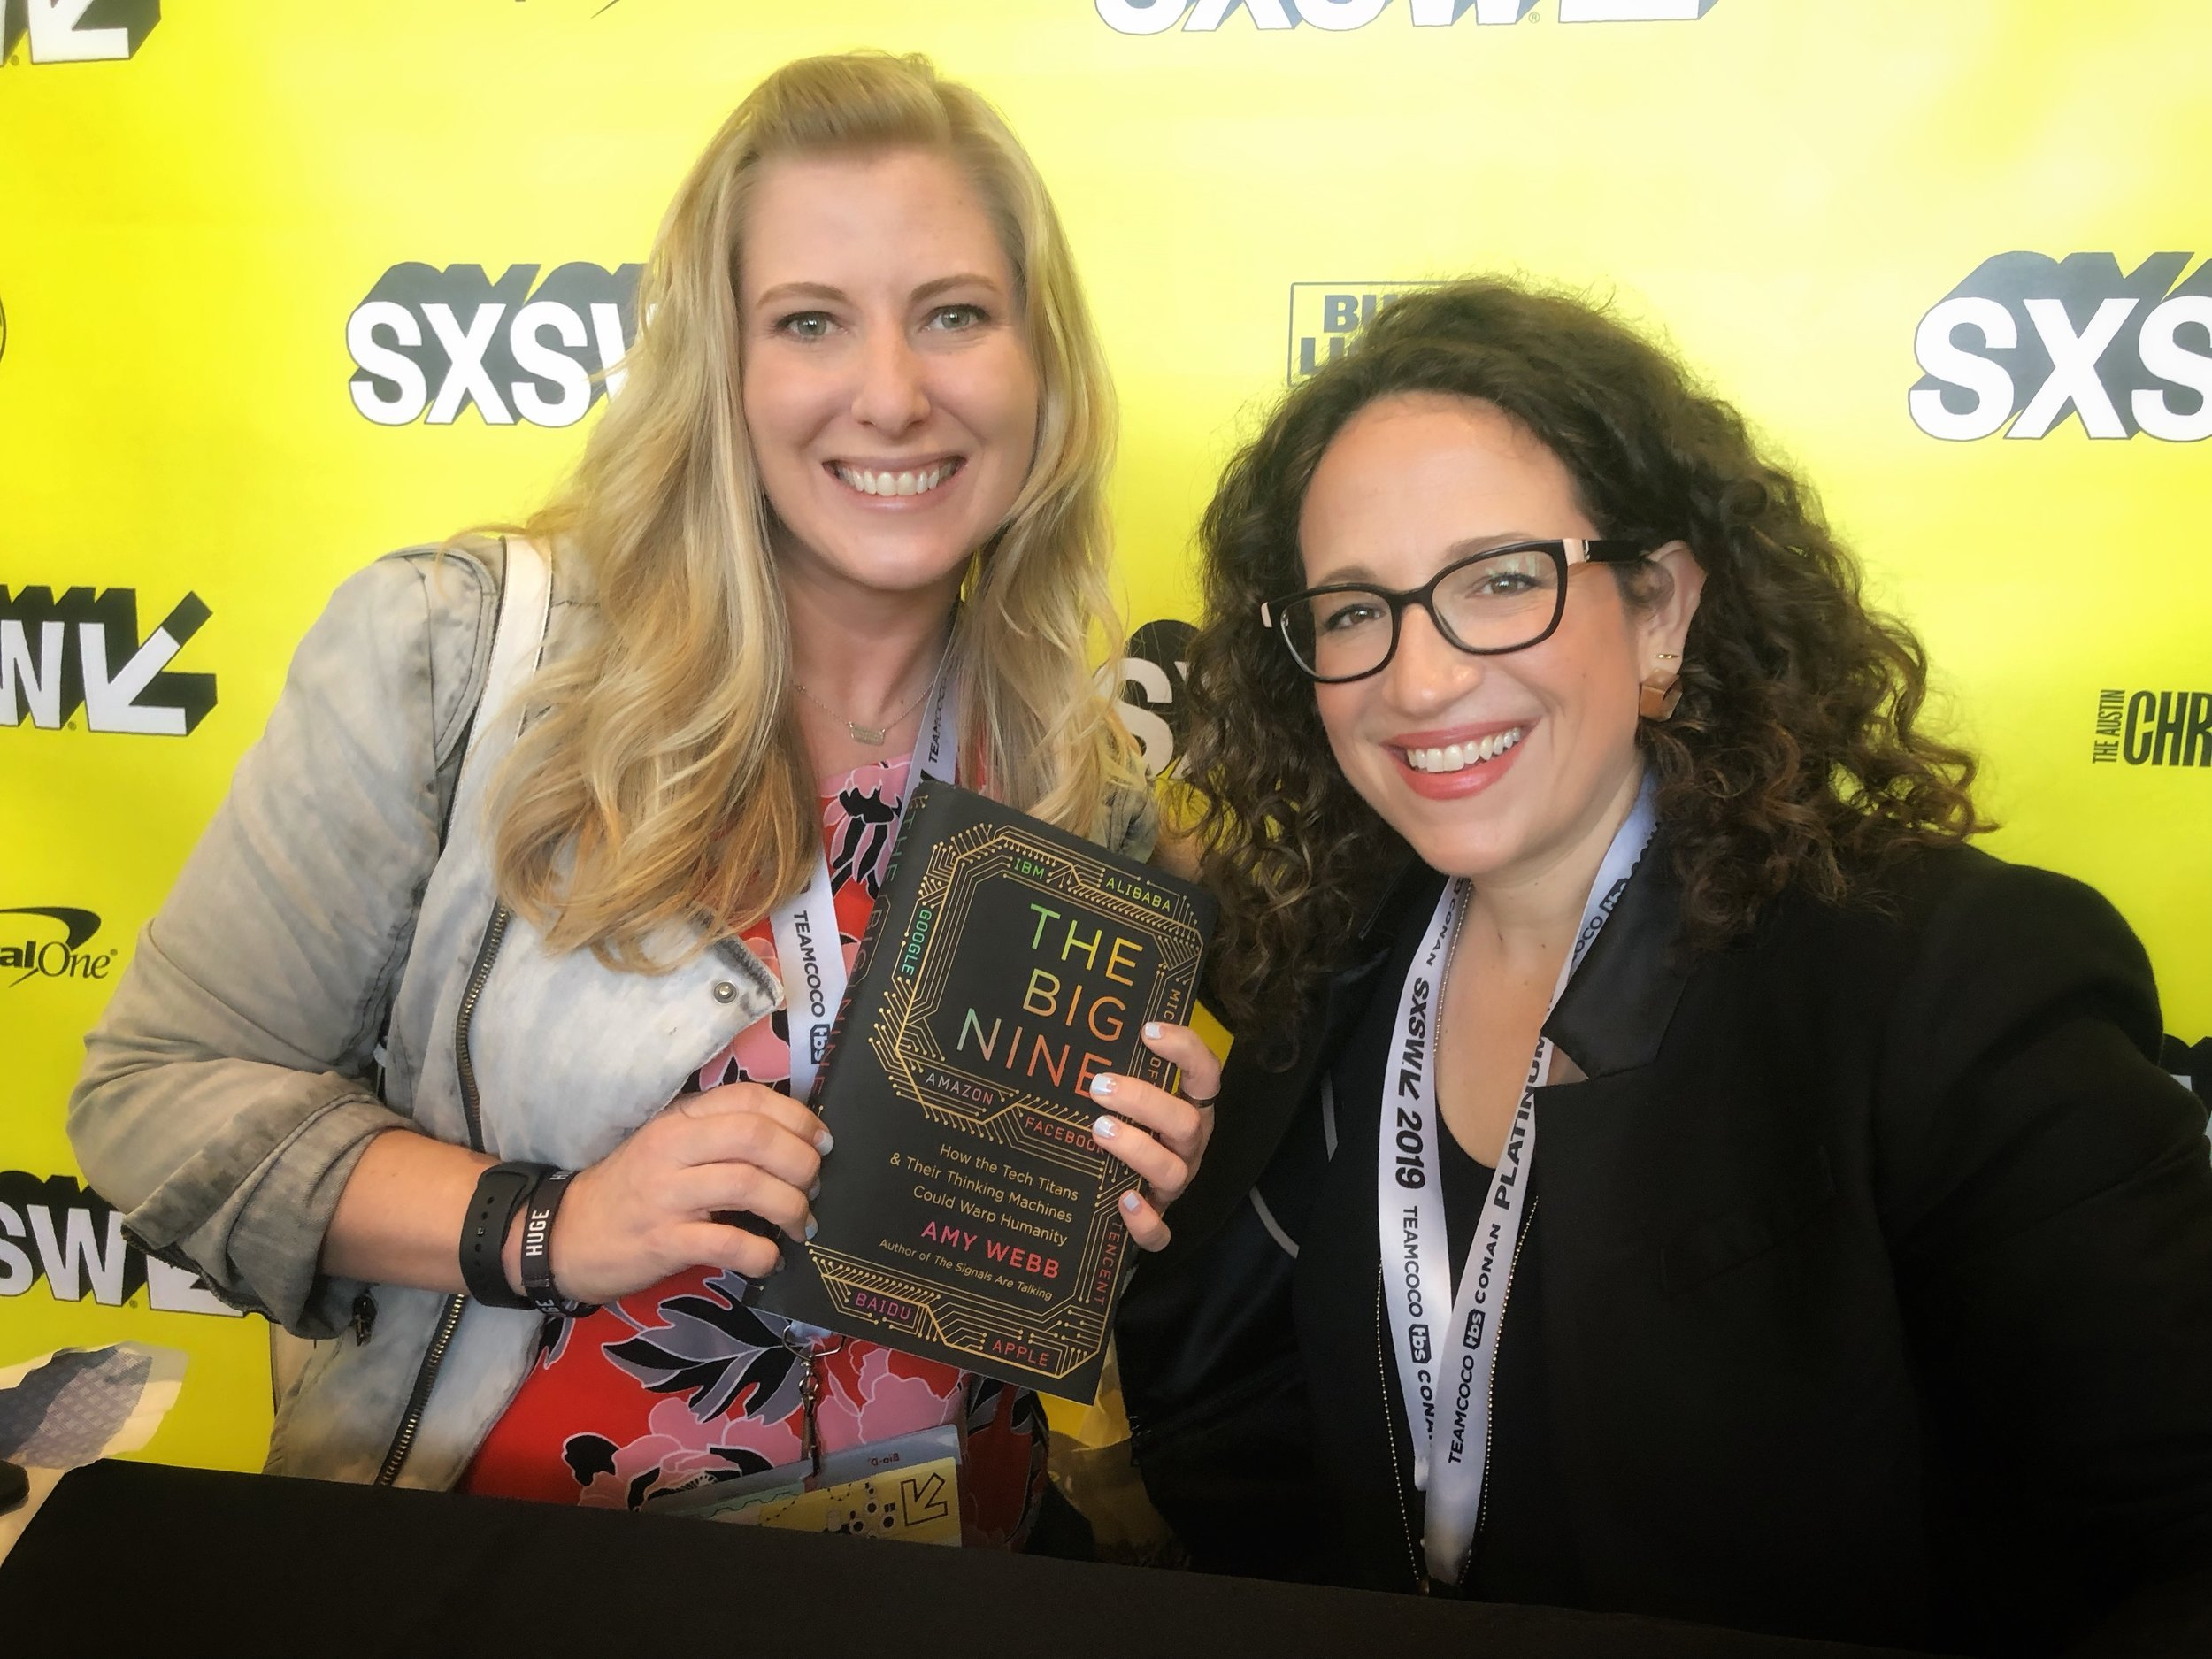 Amy Webb and me with her new book, The Big Nine